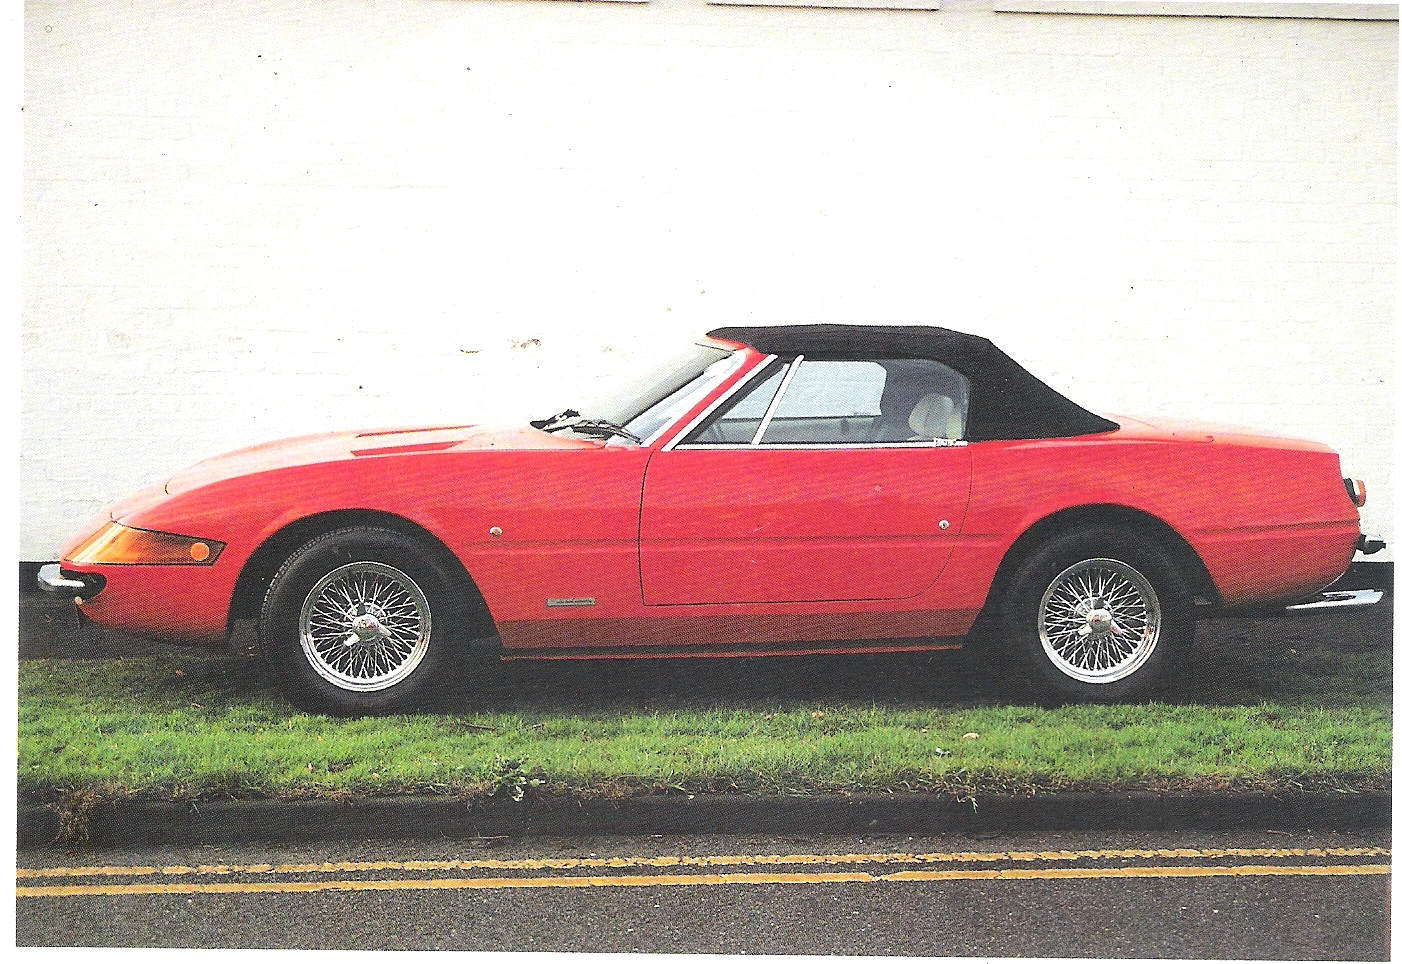 RS Daytona Spyder, by Robin Hood Engineering, based on Triumph TR7